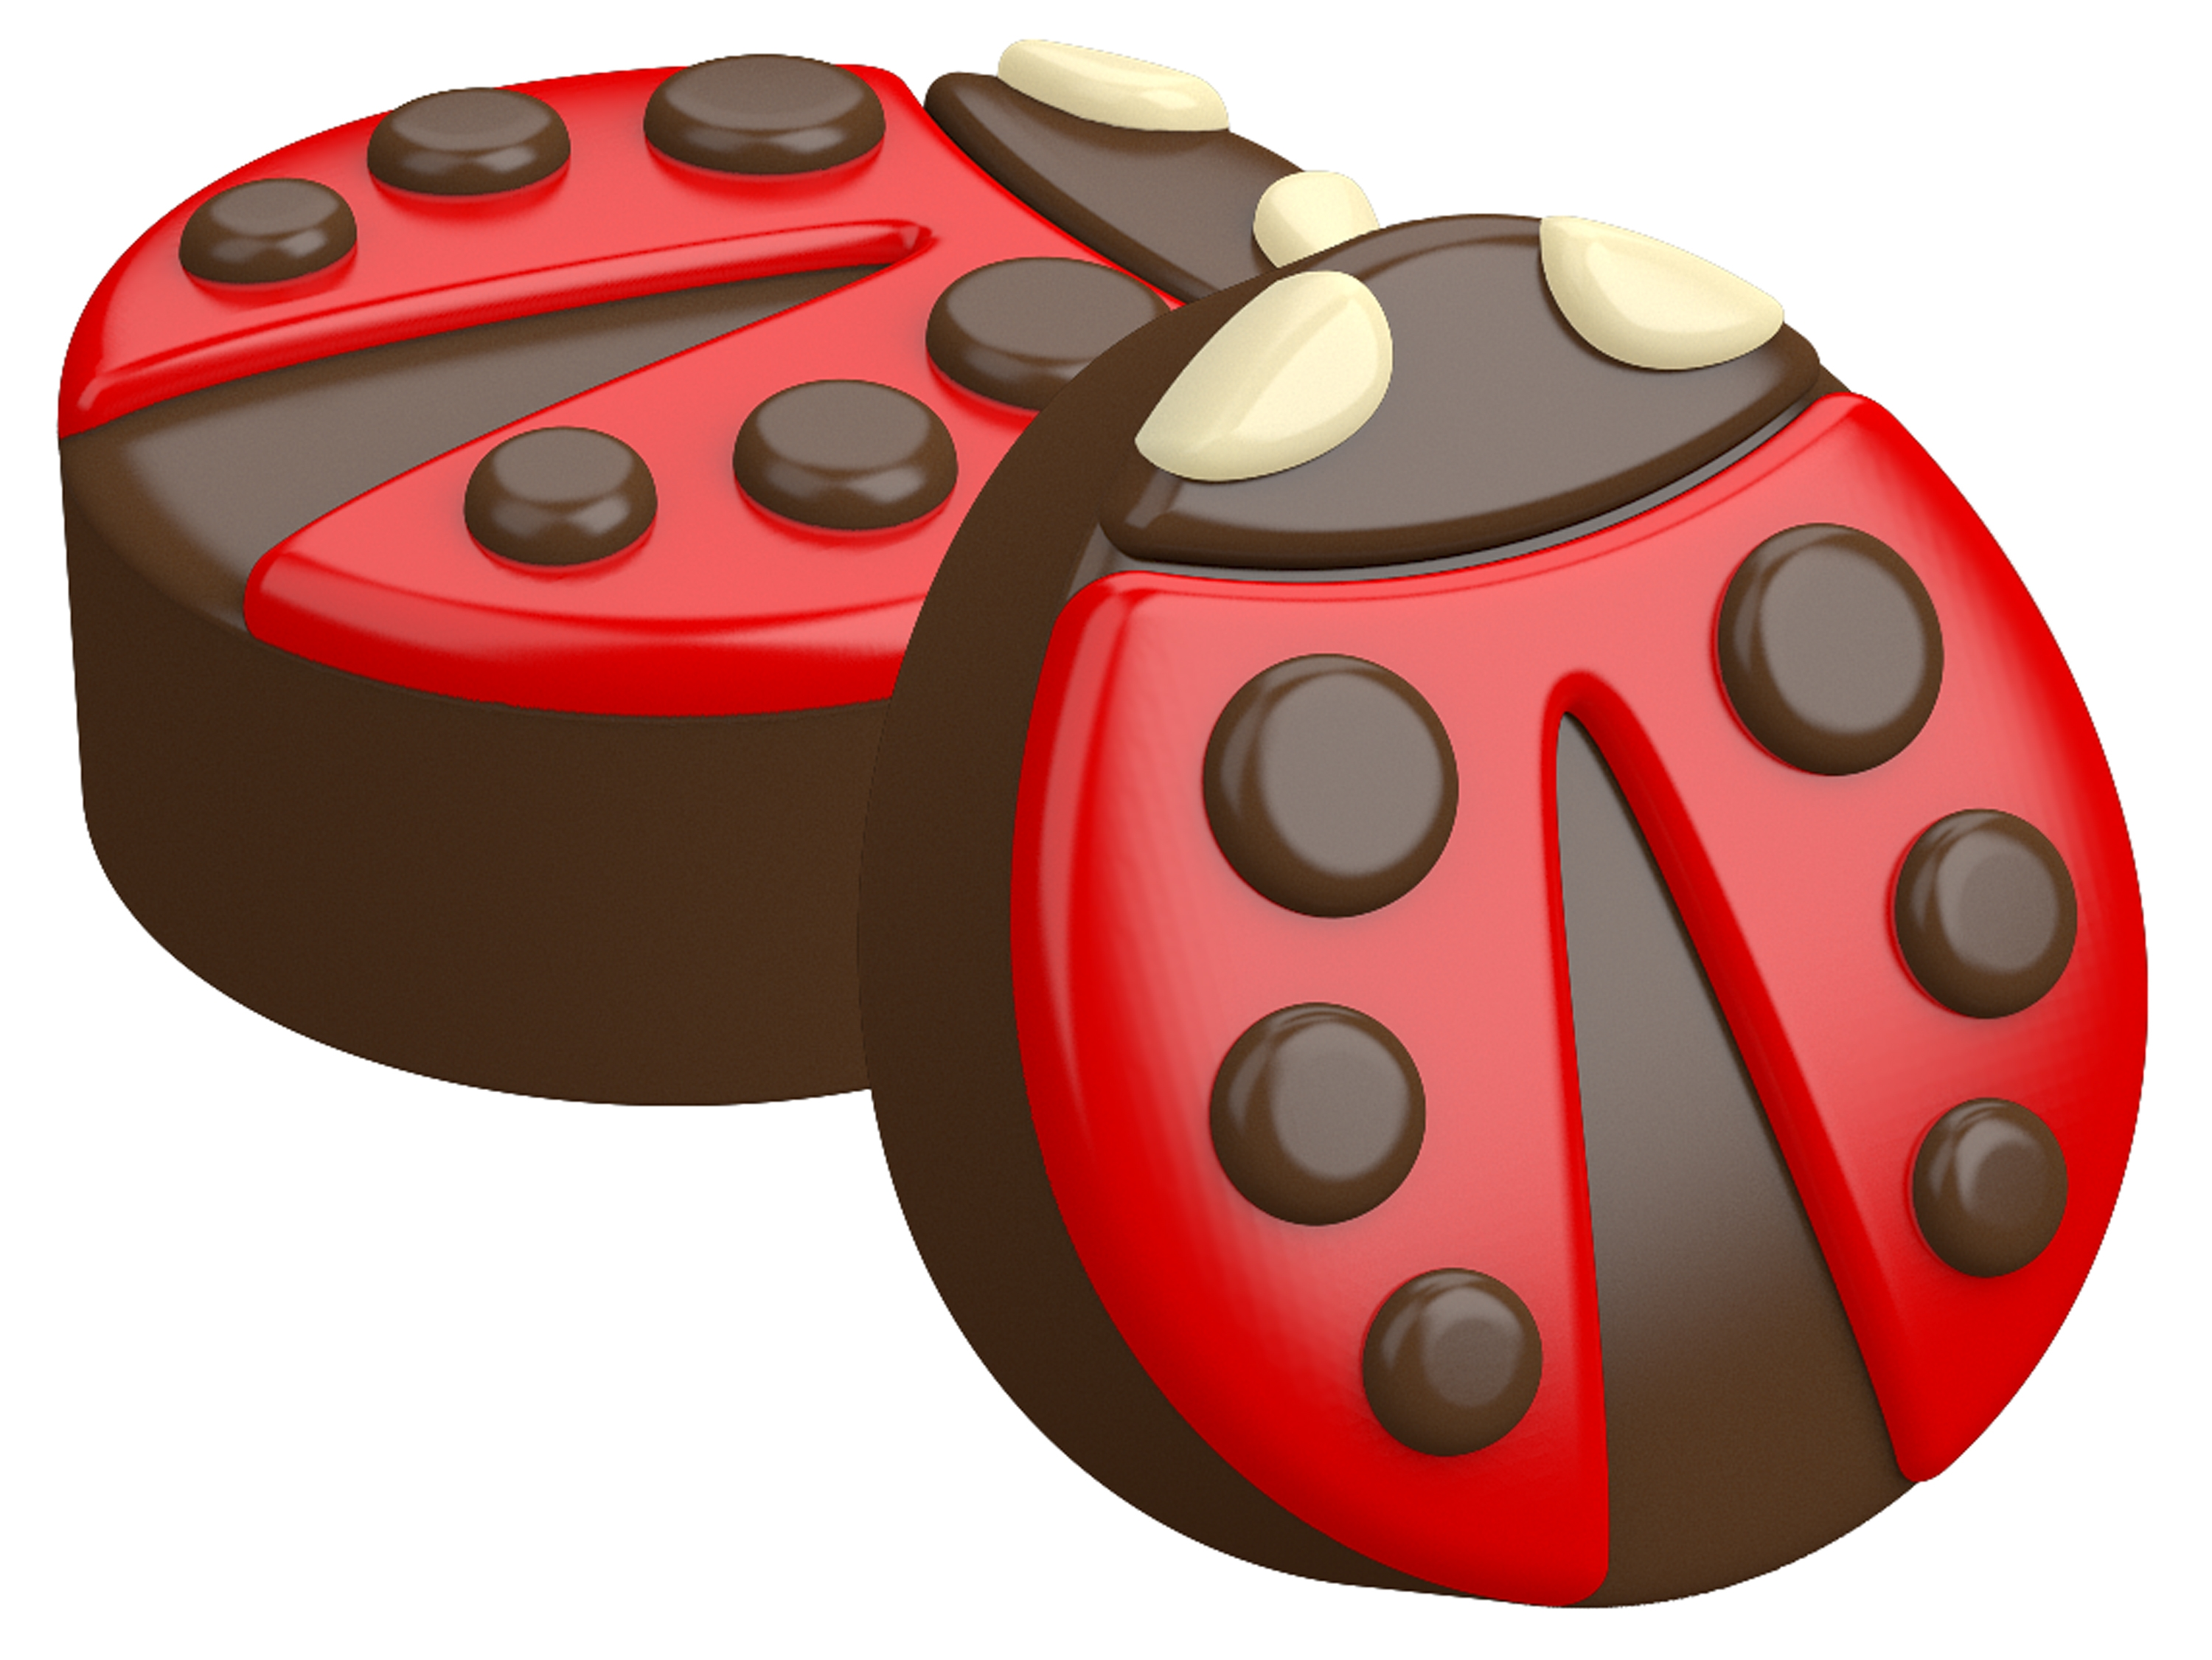 Ladybug chocolate oreo mould - Confectionately Yours